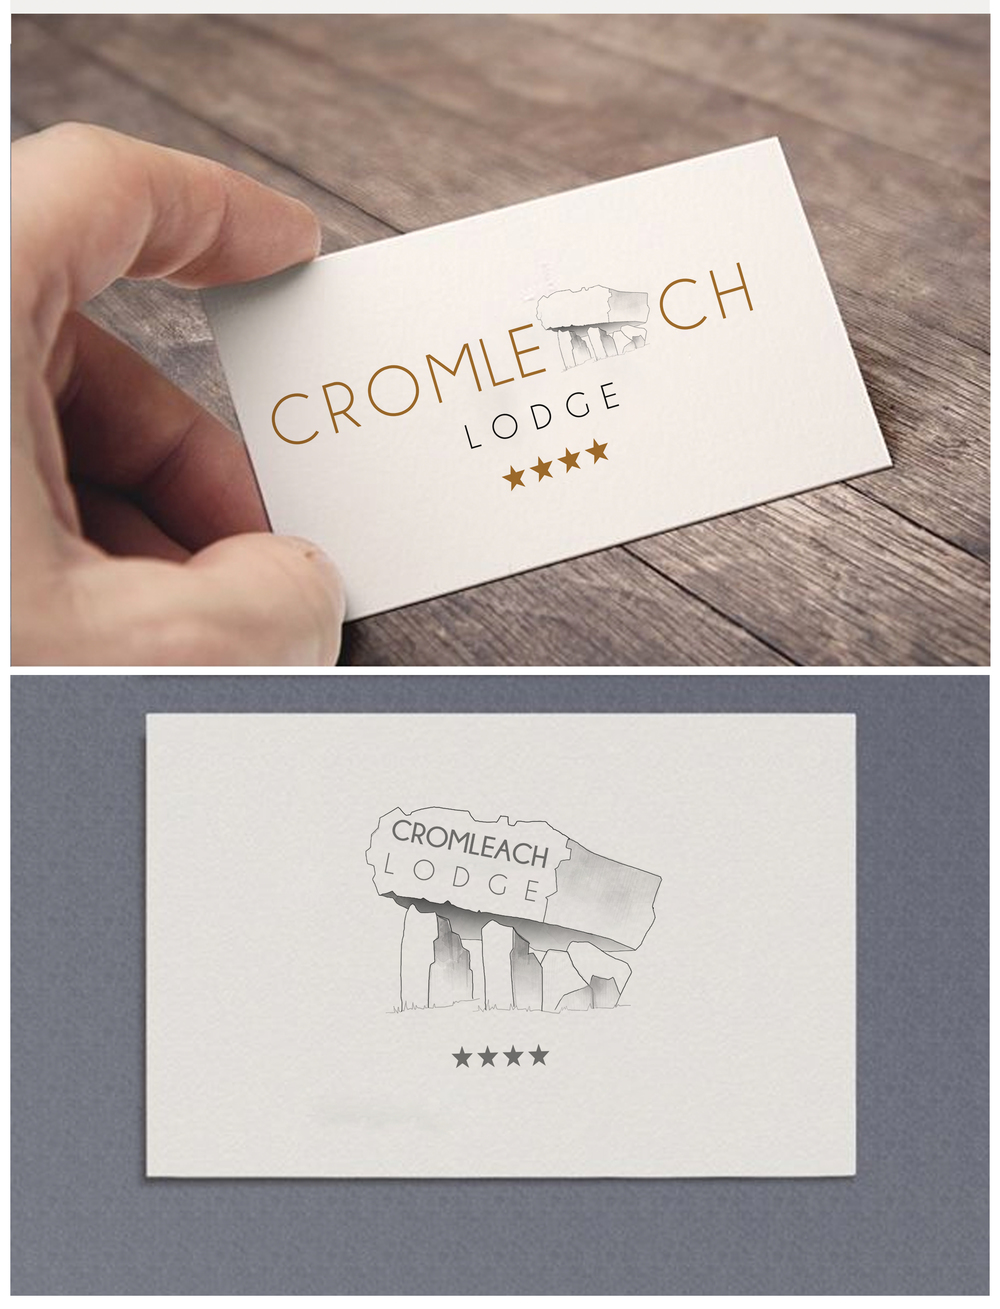 Cromleach lodge logo design